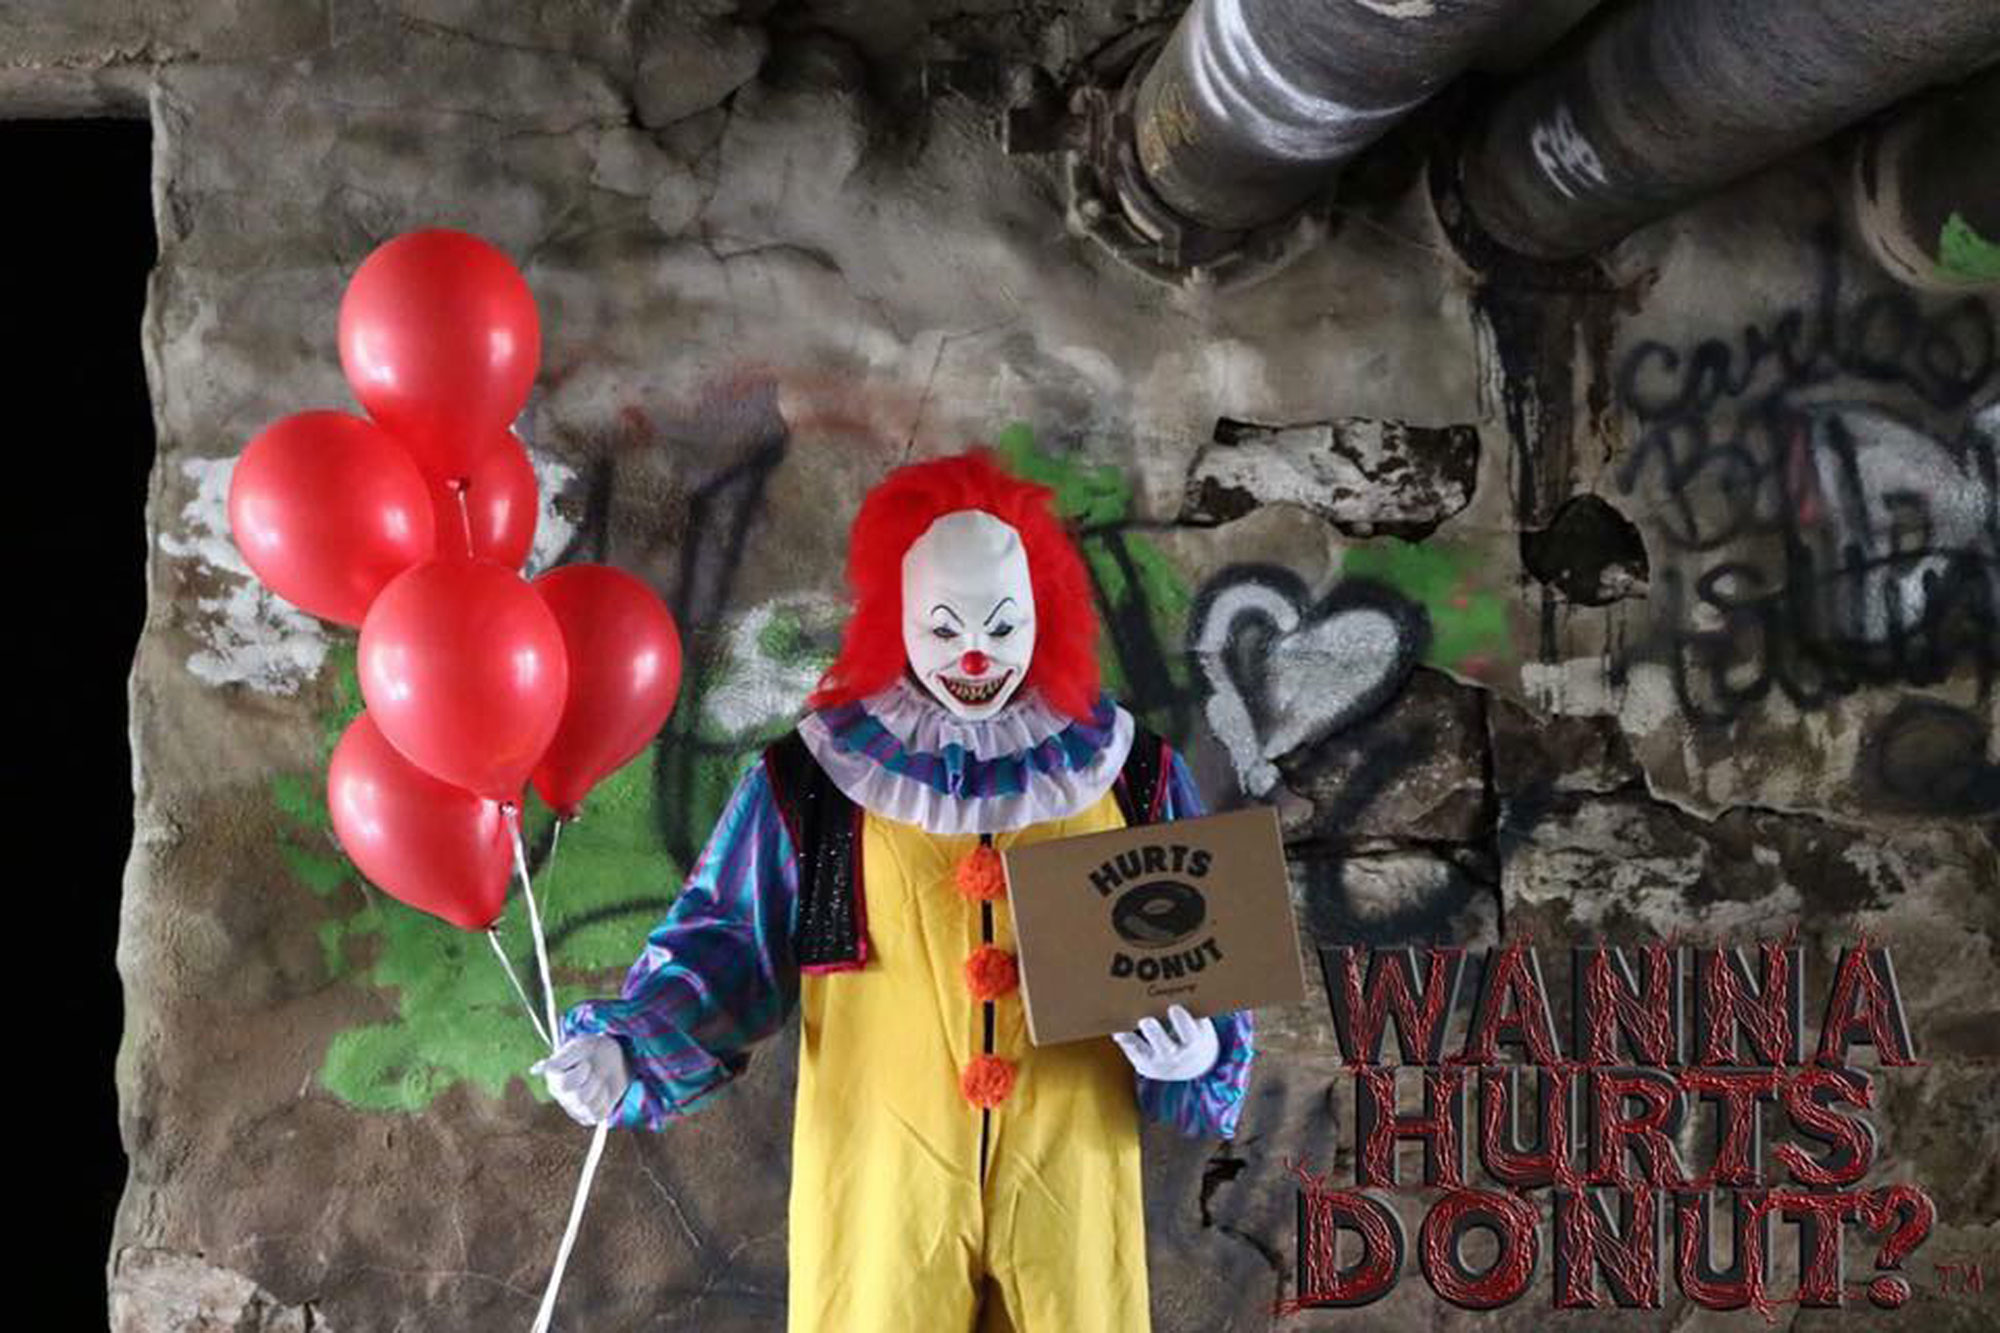 This Creepy Clown Will Deliver Doughnuts to Your Friends (or Enemies)